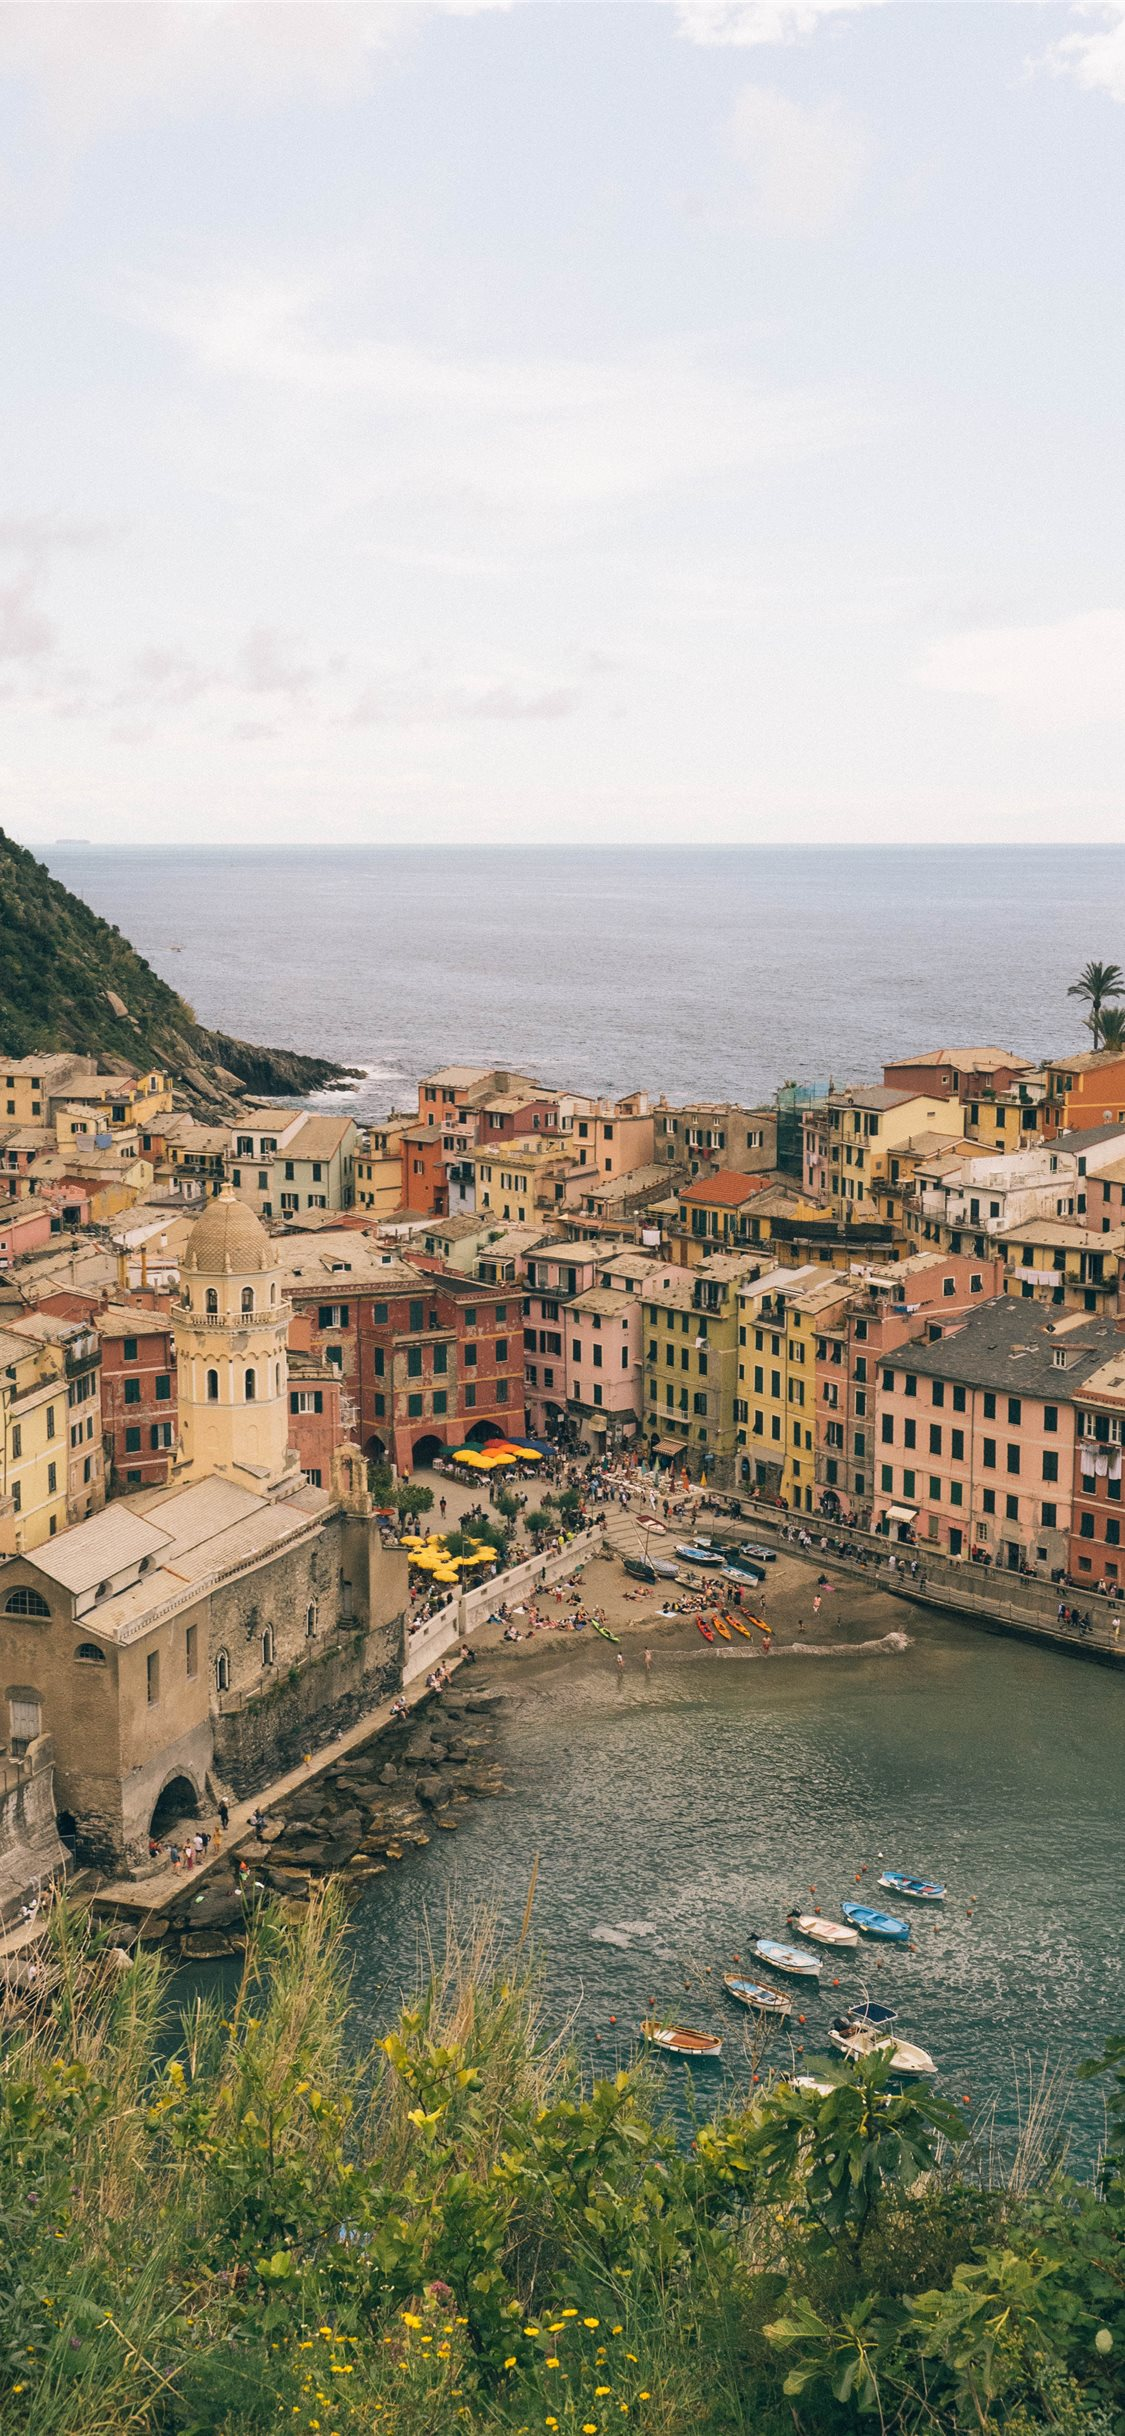 Vernazza Cinque Terre Italy May 2019 iPhone X Wallpapers Download 1125x2436